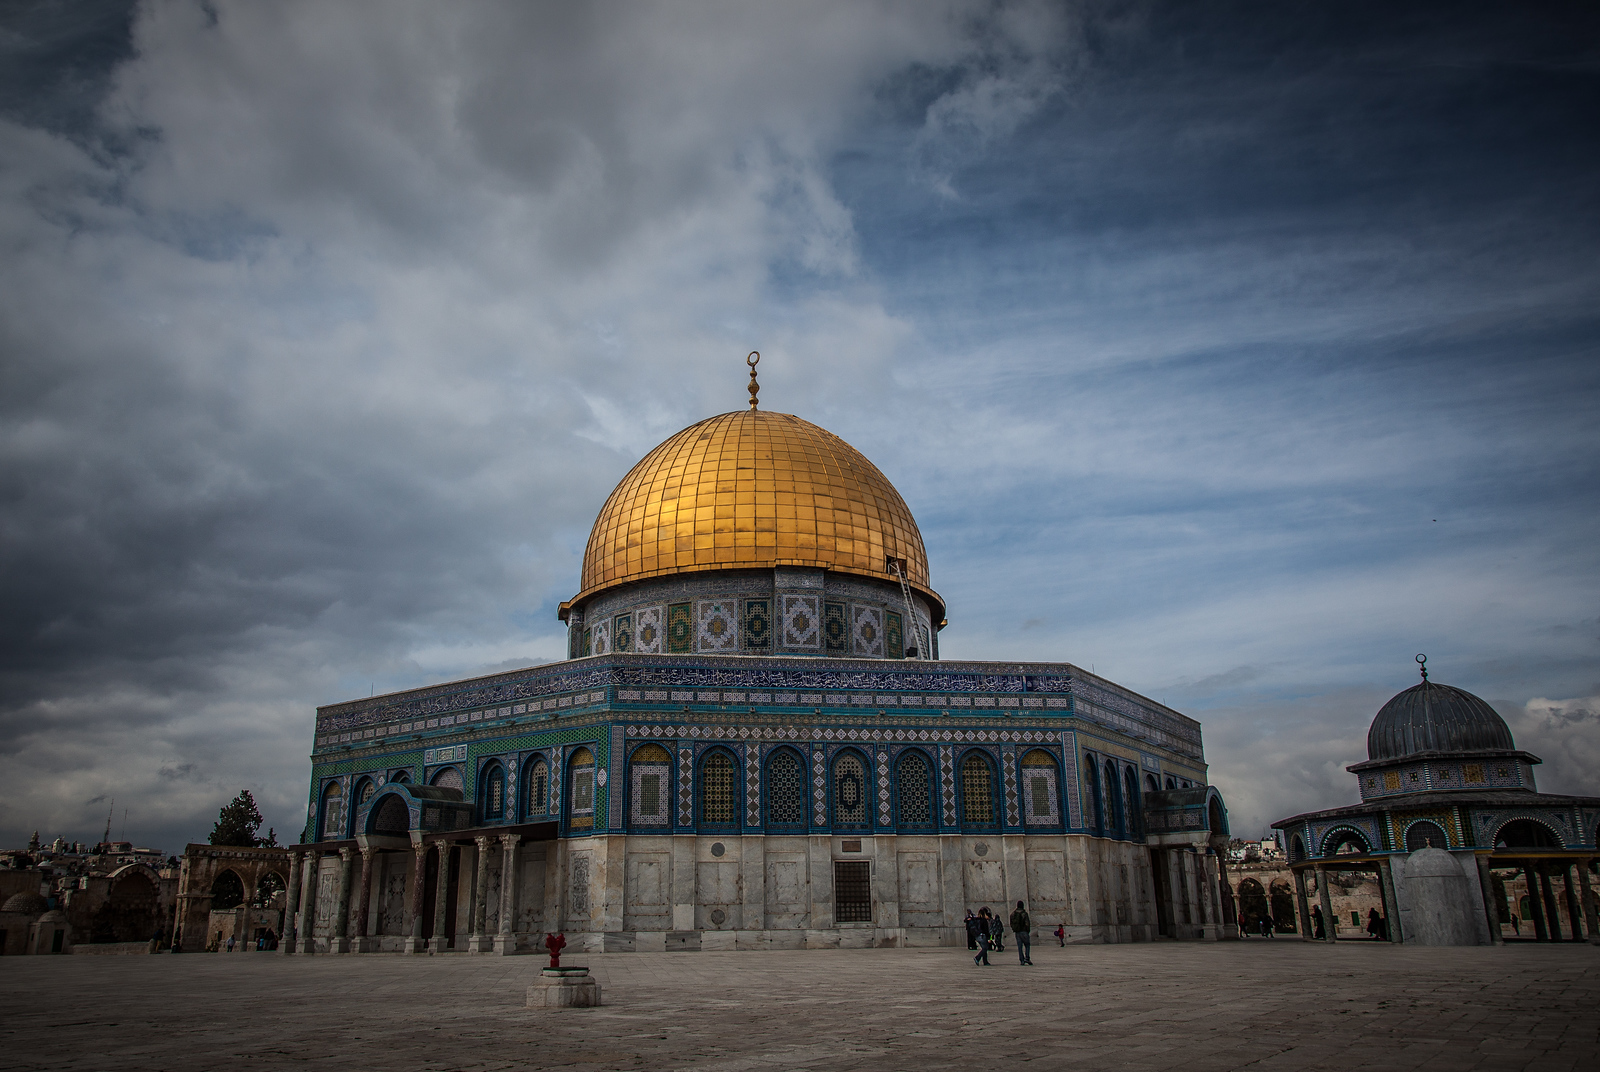 Dome of the Rock - The octagonal shire was built in the 7th century. Extensive decoration from a variety of periods, including mosaics, painted wood, marble, multi-colored tiles, carpets, and carved stone, covers most of the exterior and interior of the building.